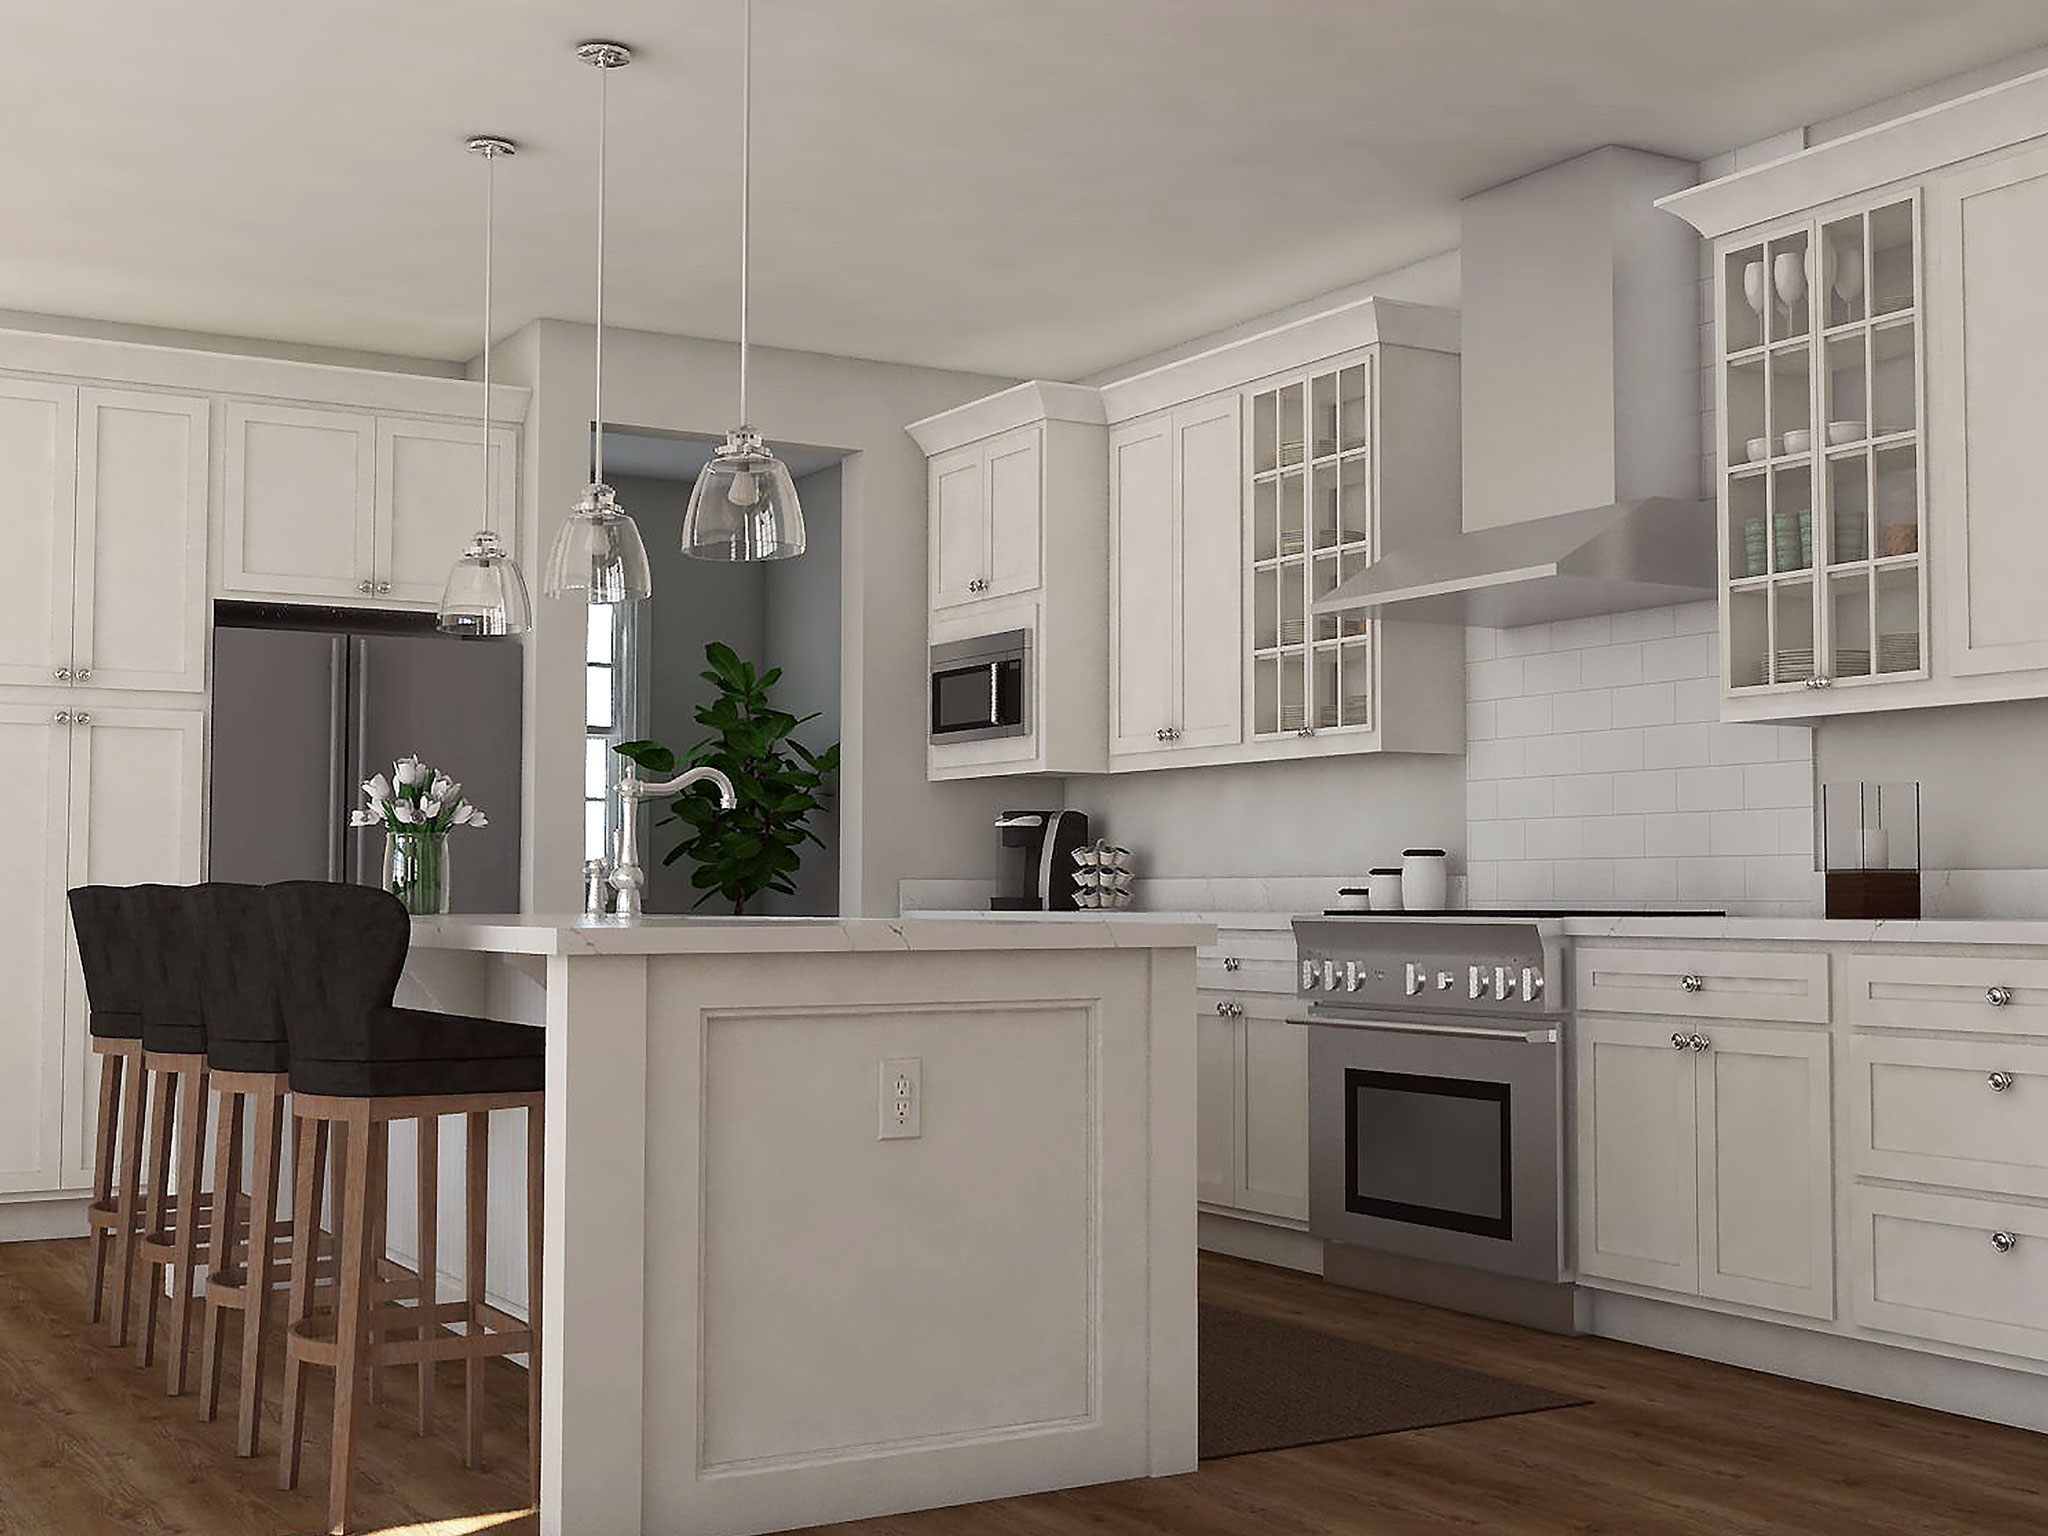 Chefs Kitchen Rendering